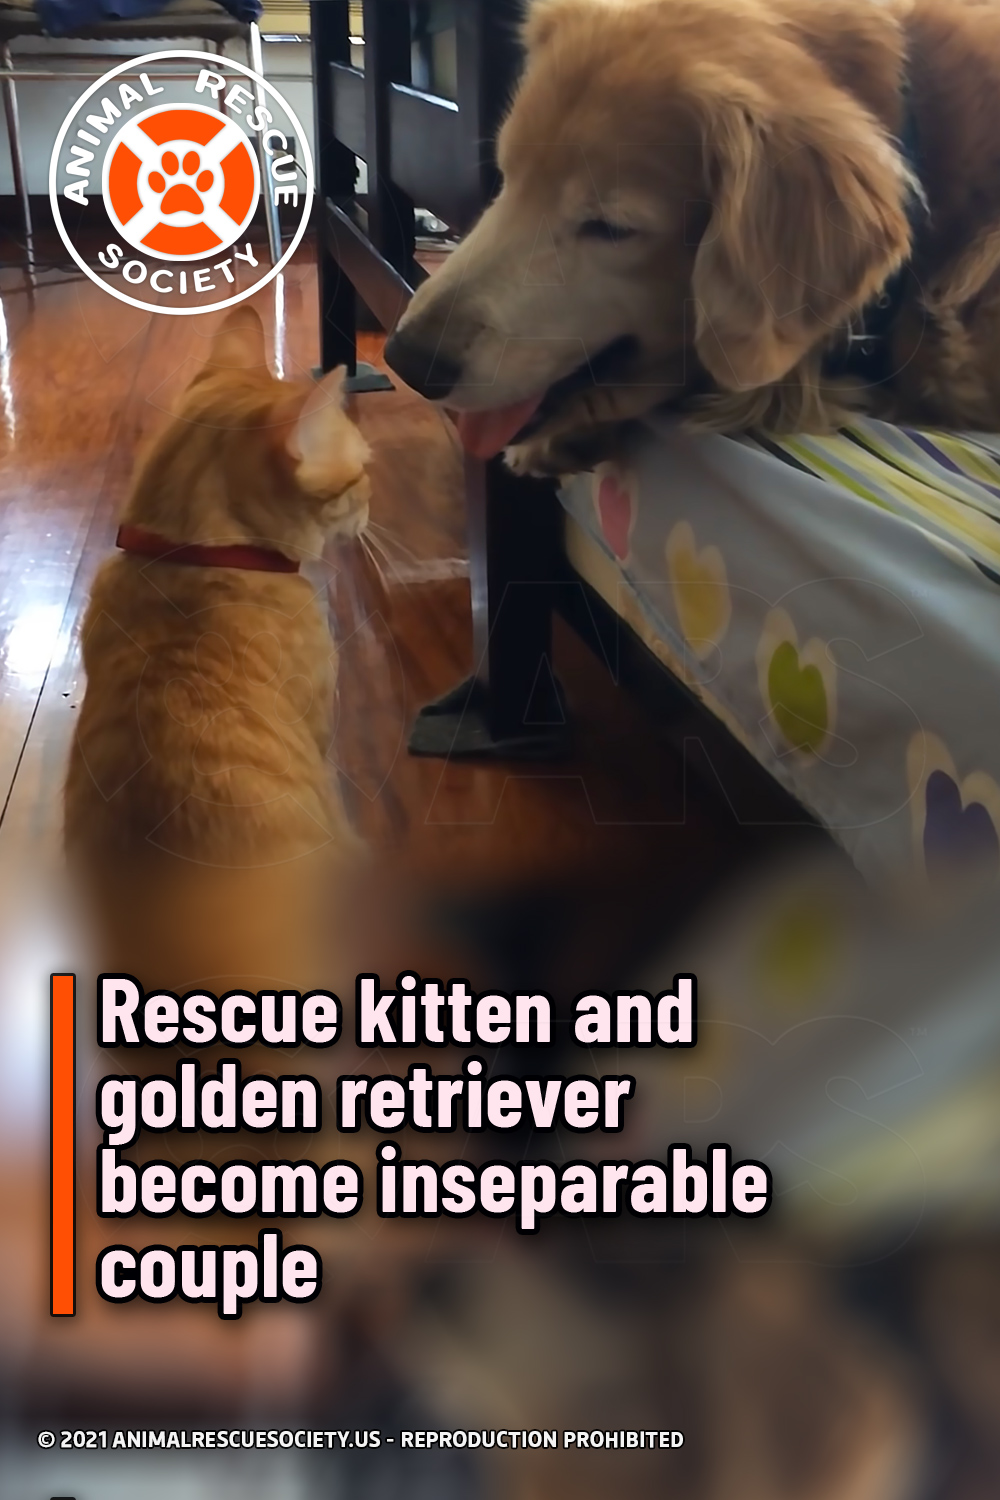 Rescue kitten and golden retriever become inseparable couple